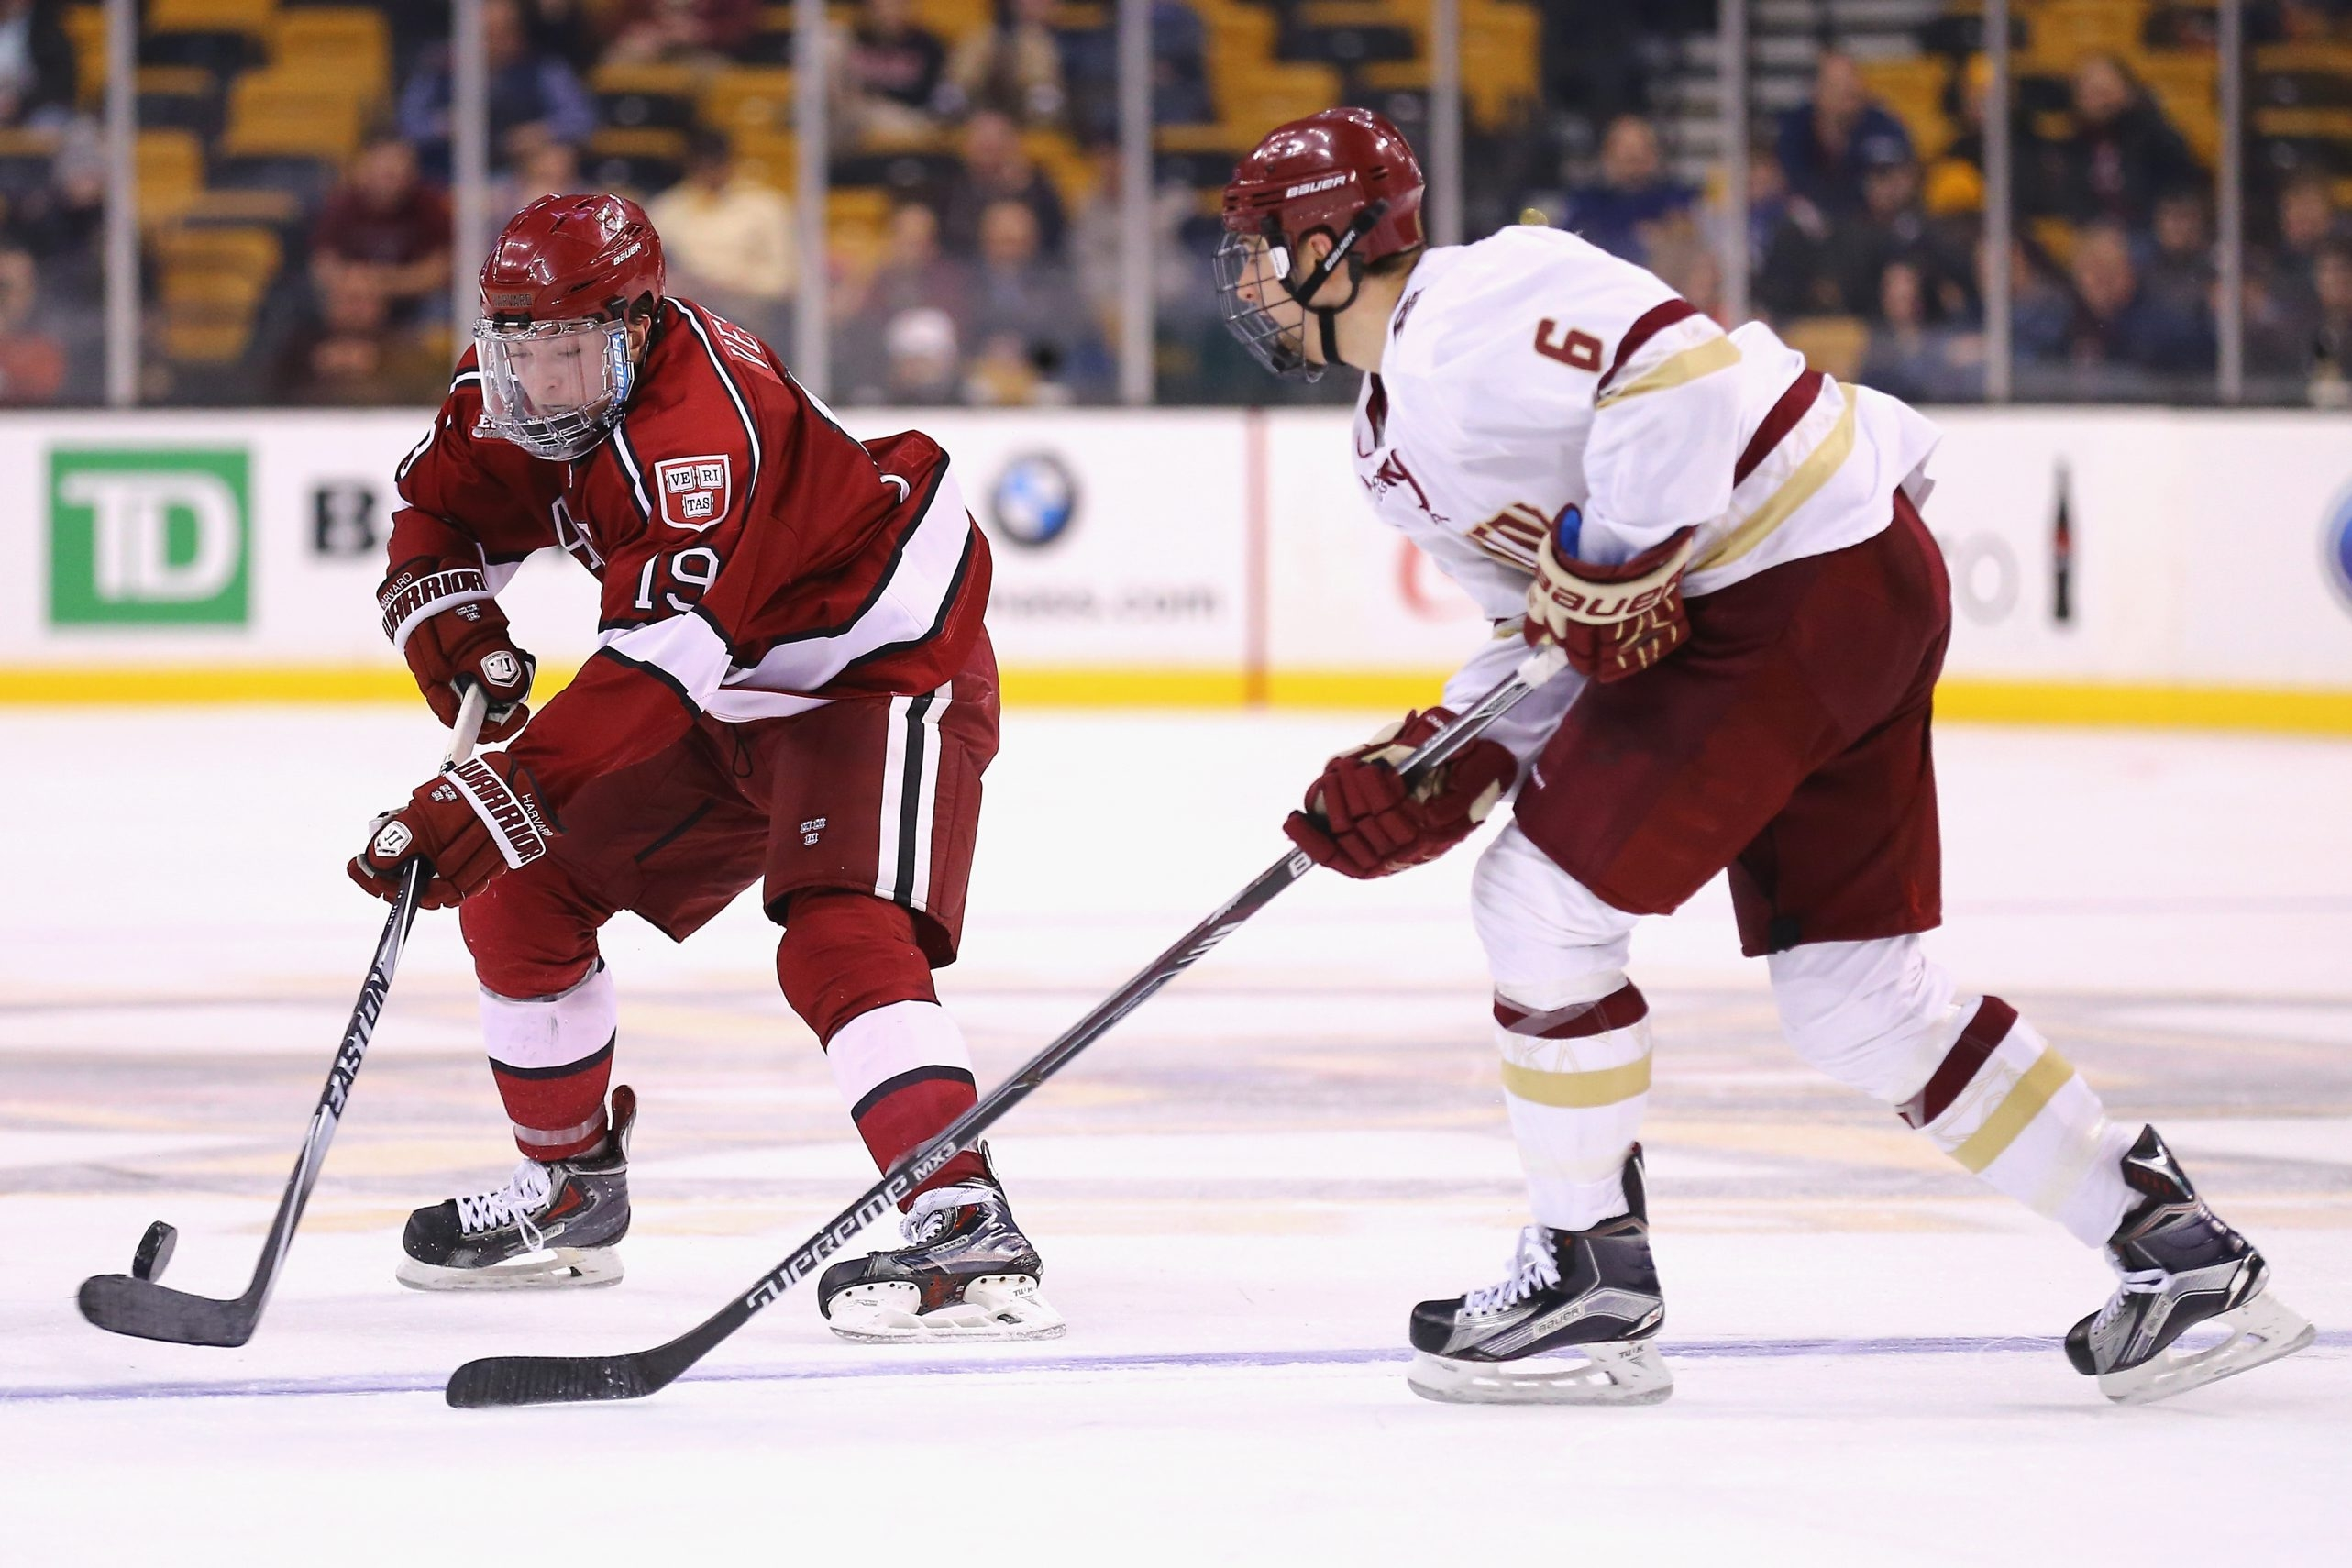 After the long buildup, Harvard star Jimmy Vesey, left, will have to play like a star in the NHL to justify all the hype.